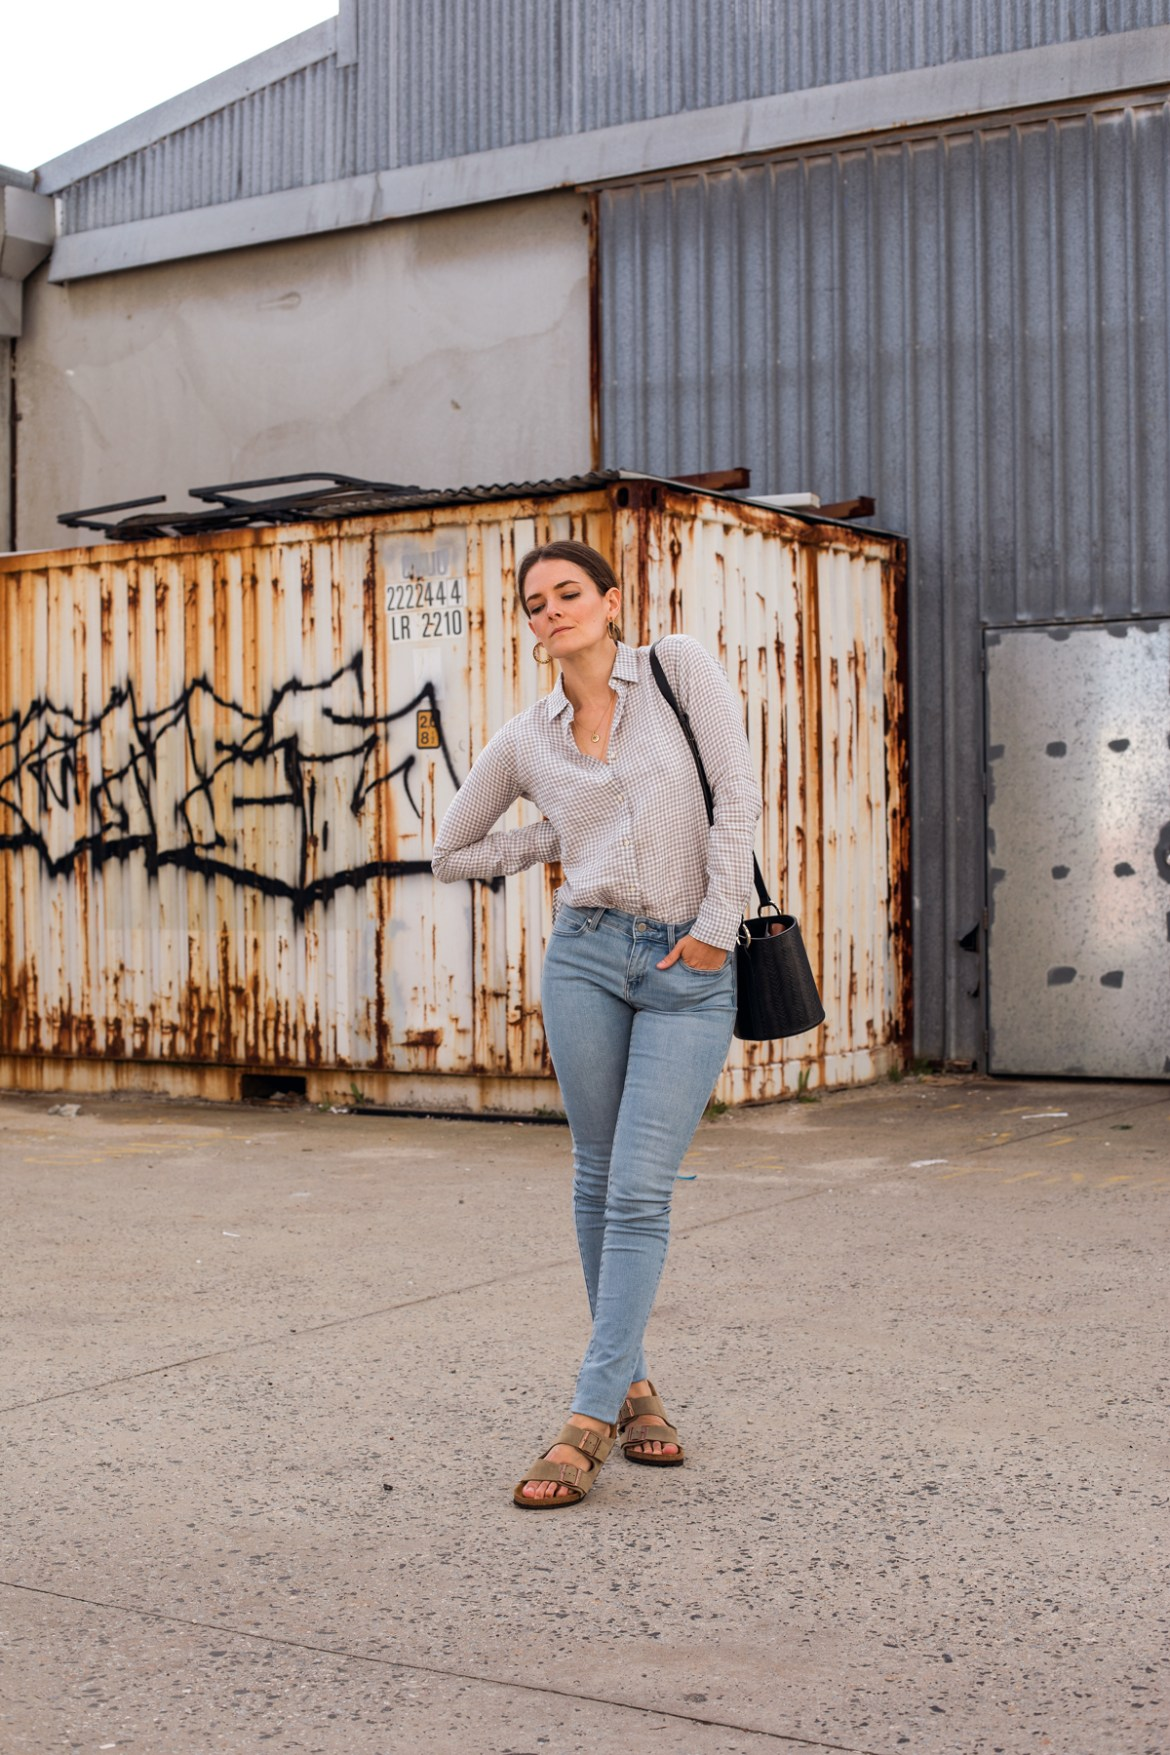 Uniqlo Perth is finally open! Fashion blogger Jenelle Witty from Inspiring Wit wearing Uniqlo linen shirt and denim blue skinny jeans